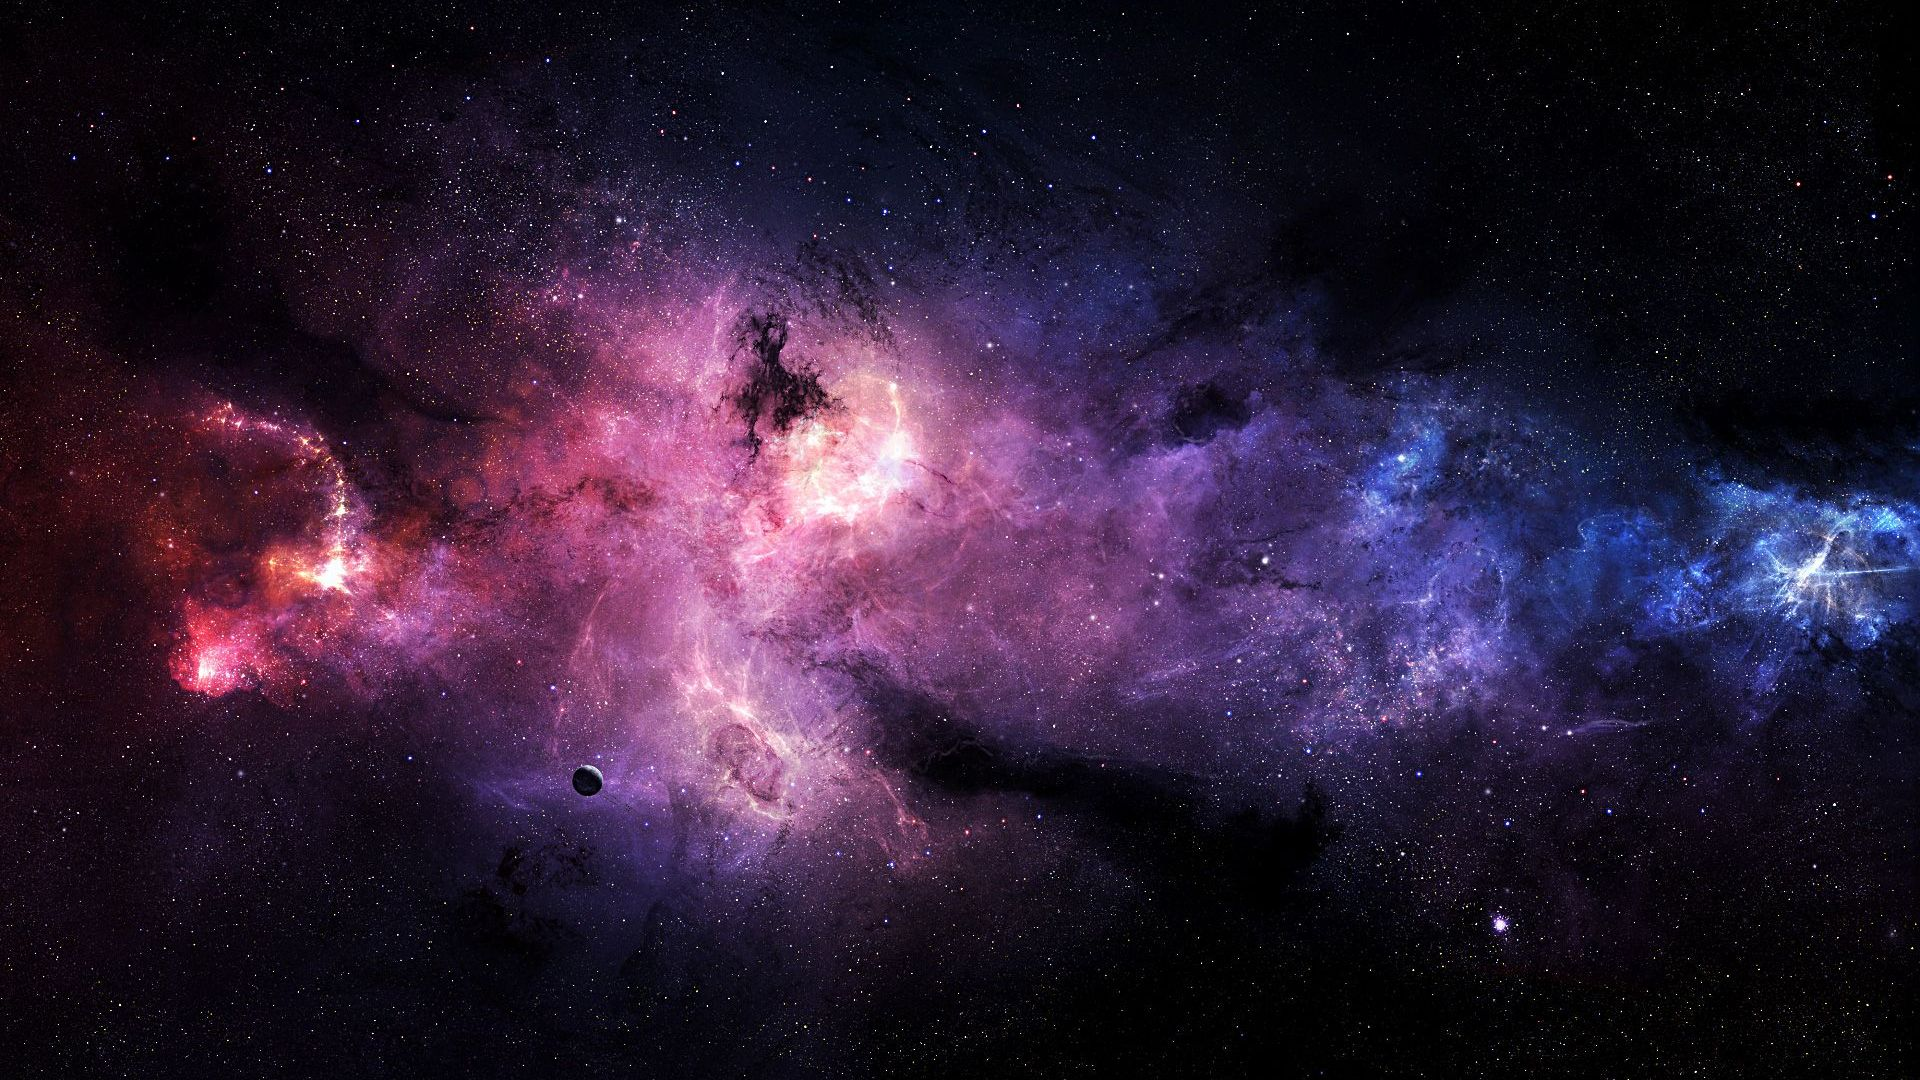 HD Wallpapers Galaxy - WallpaperSafari